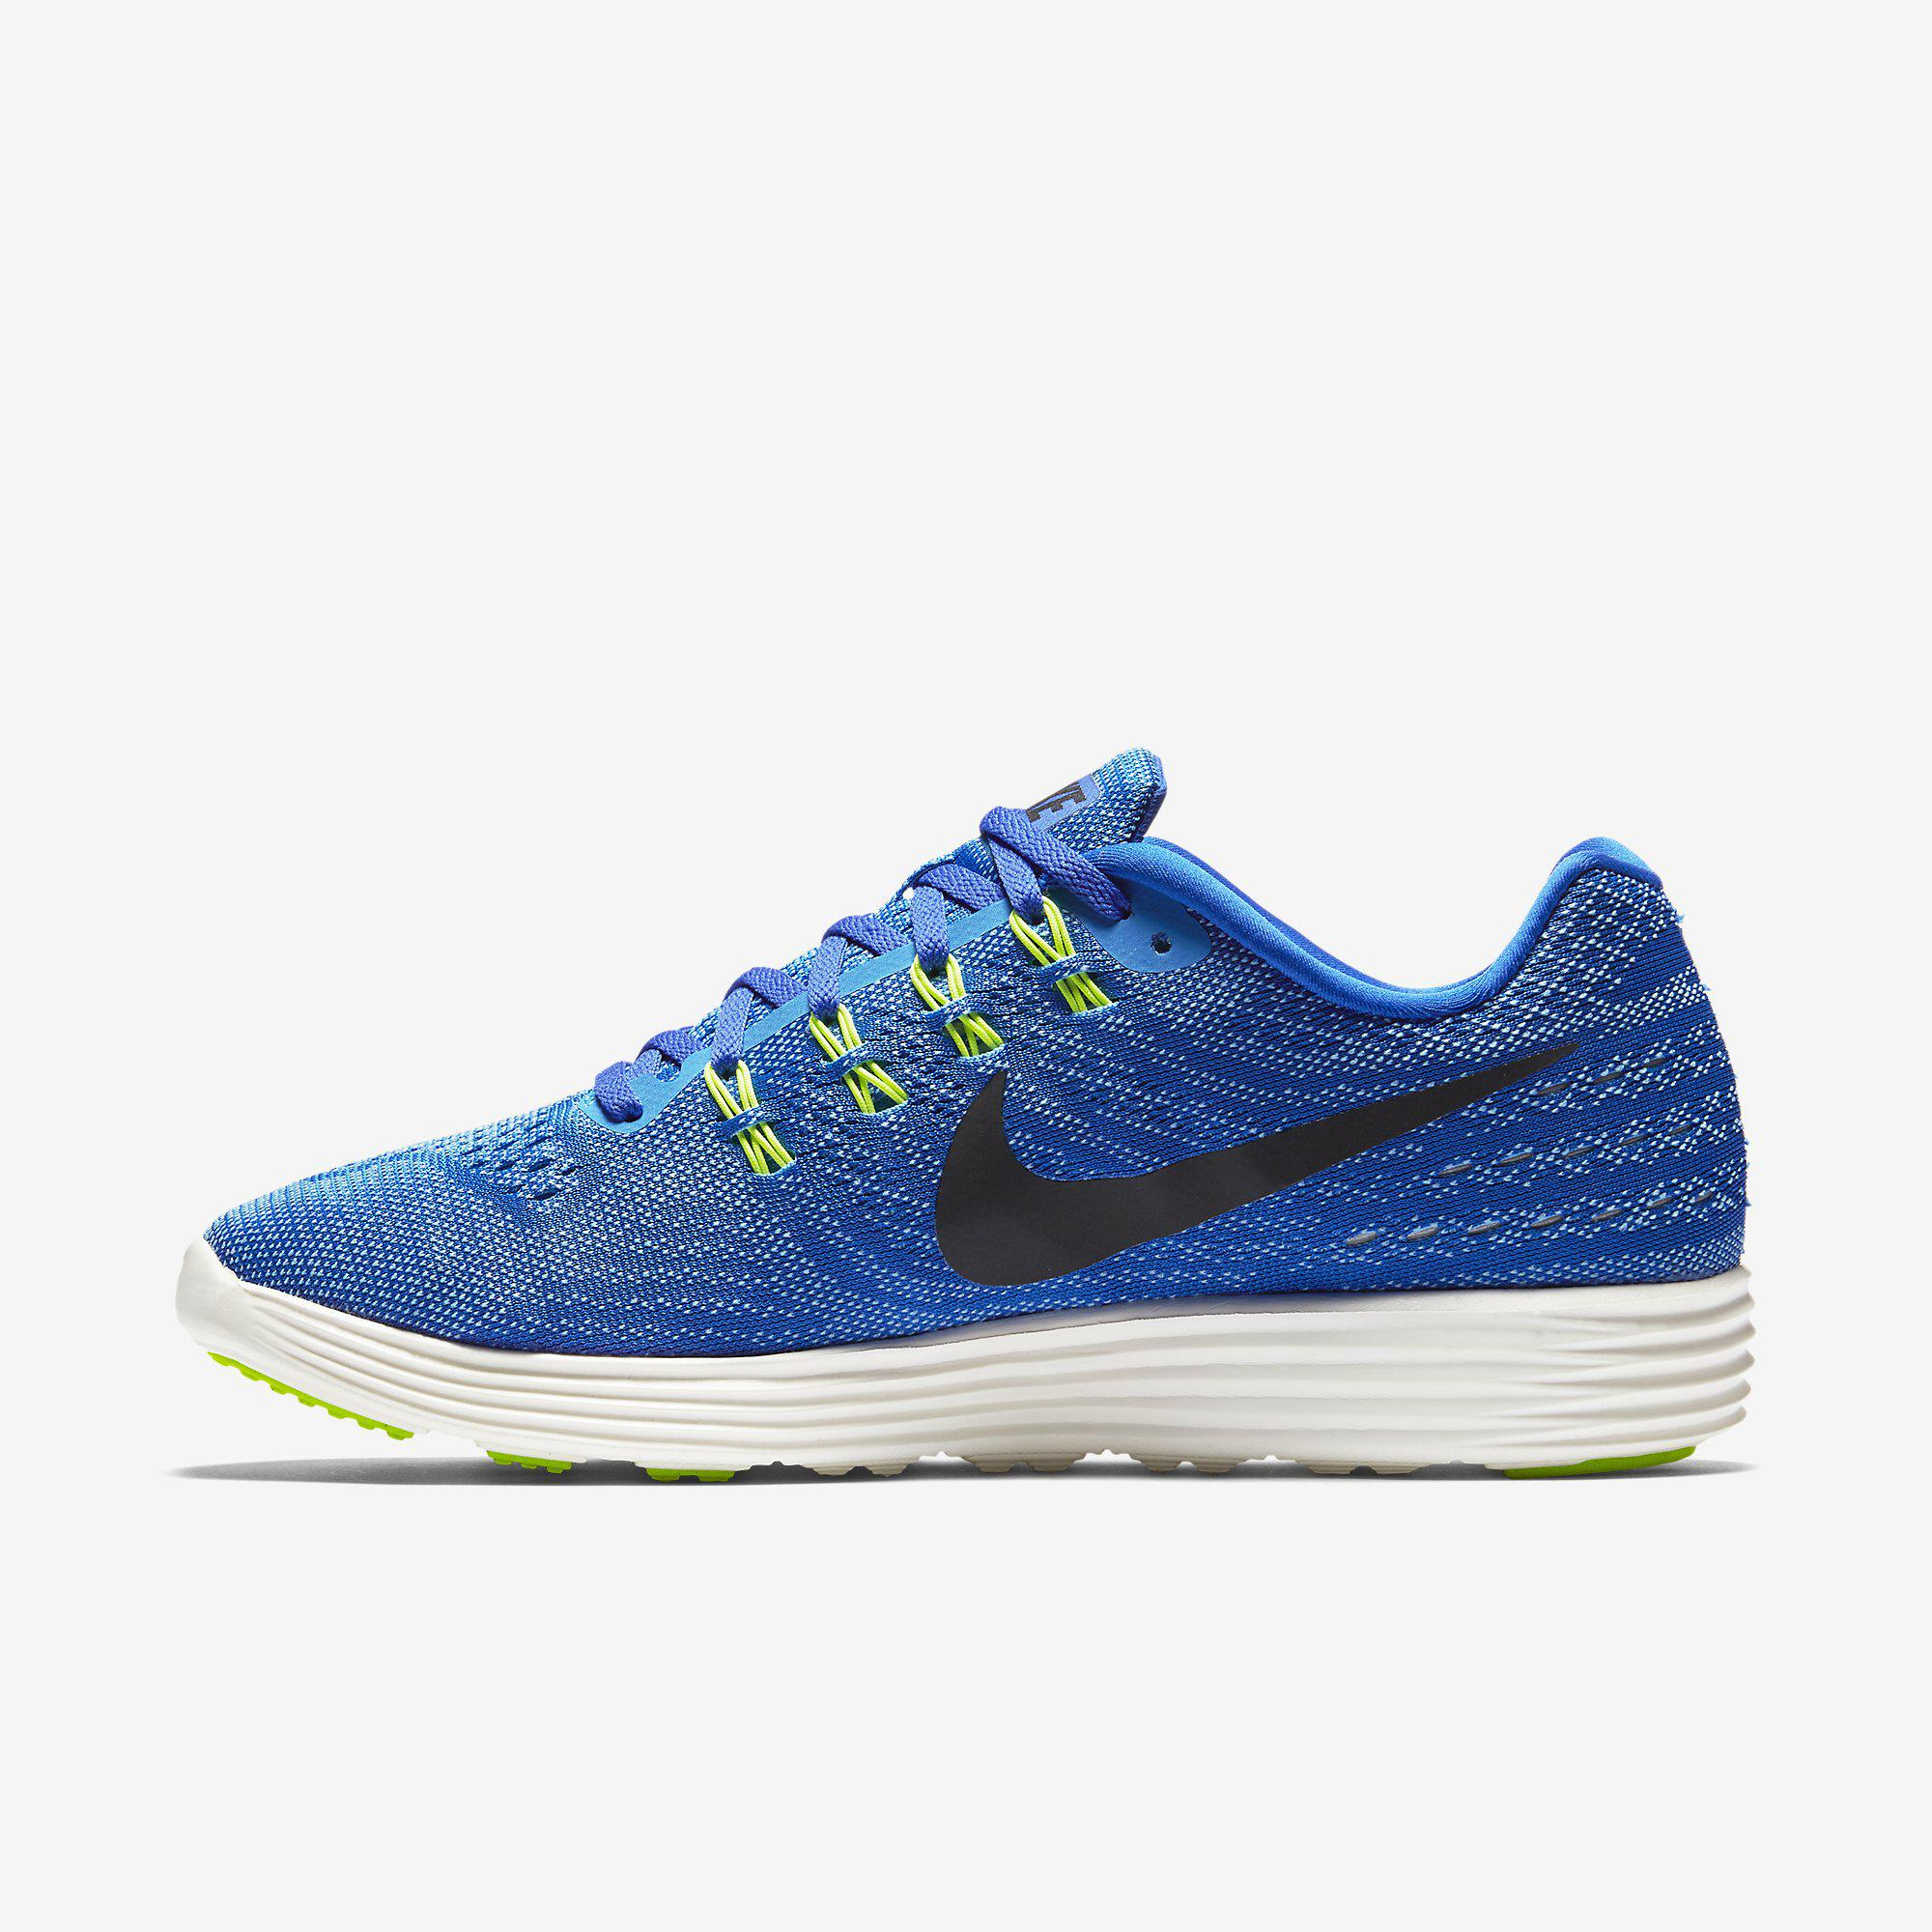 Nike Mens LunarTempo 2 Running Shoes